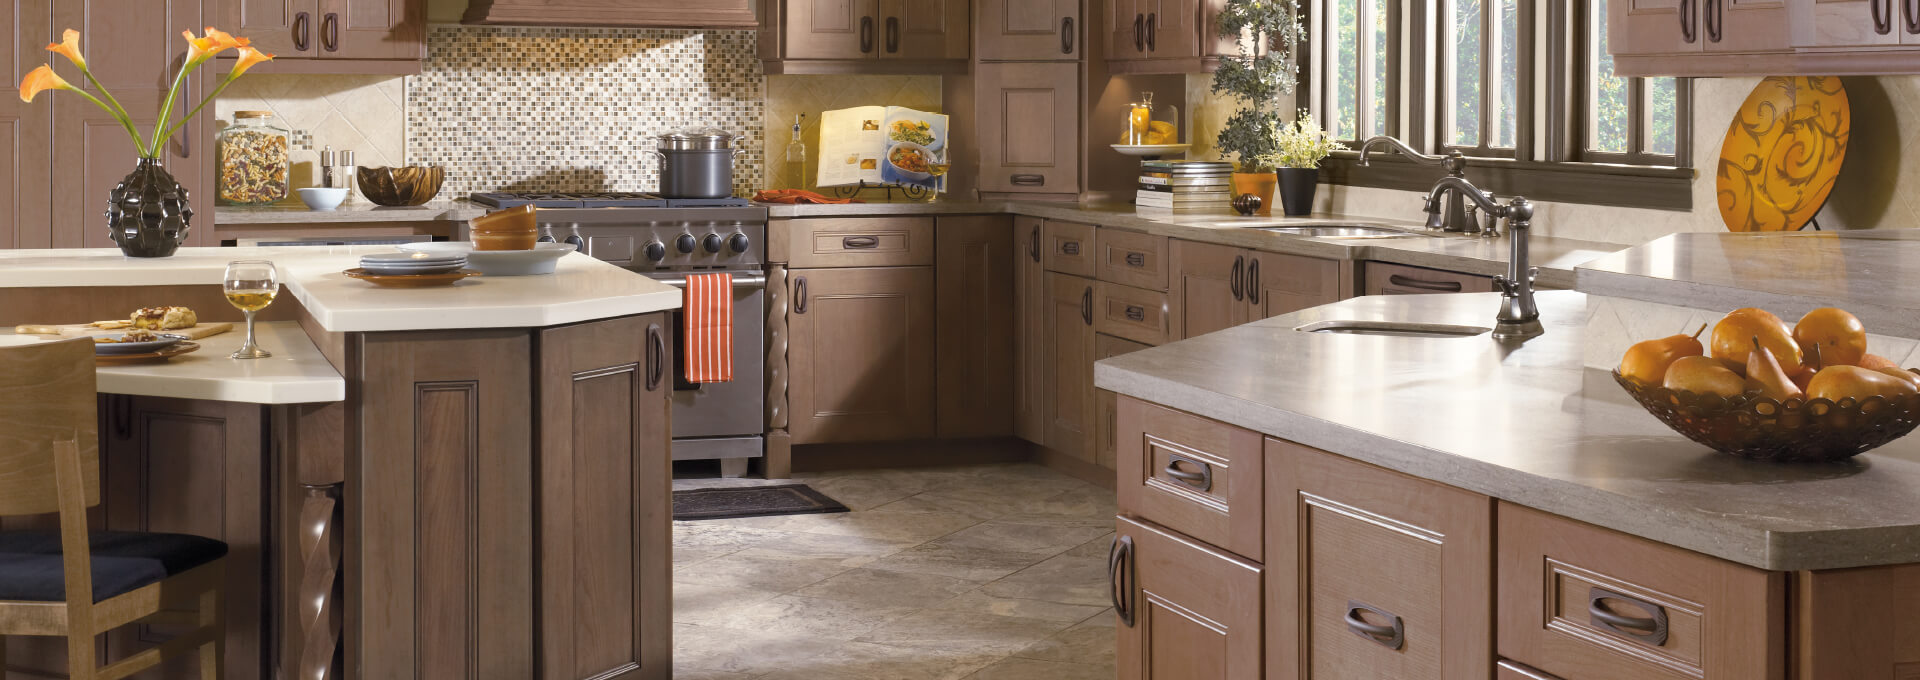 Kitchen Express Light Wood Kitchen Cabinets